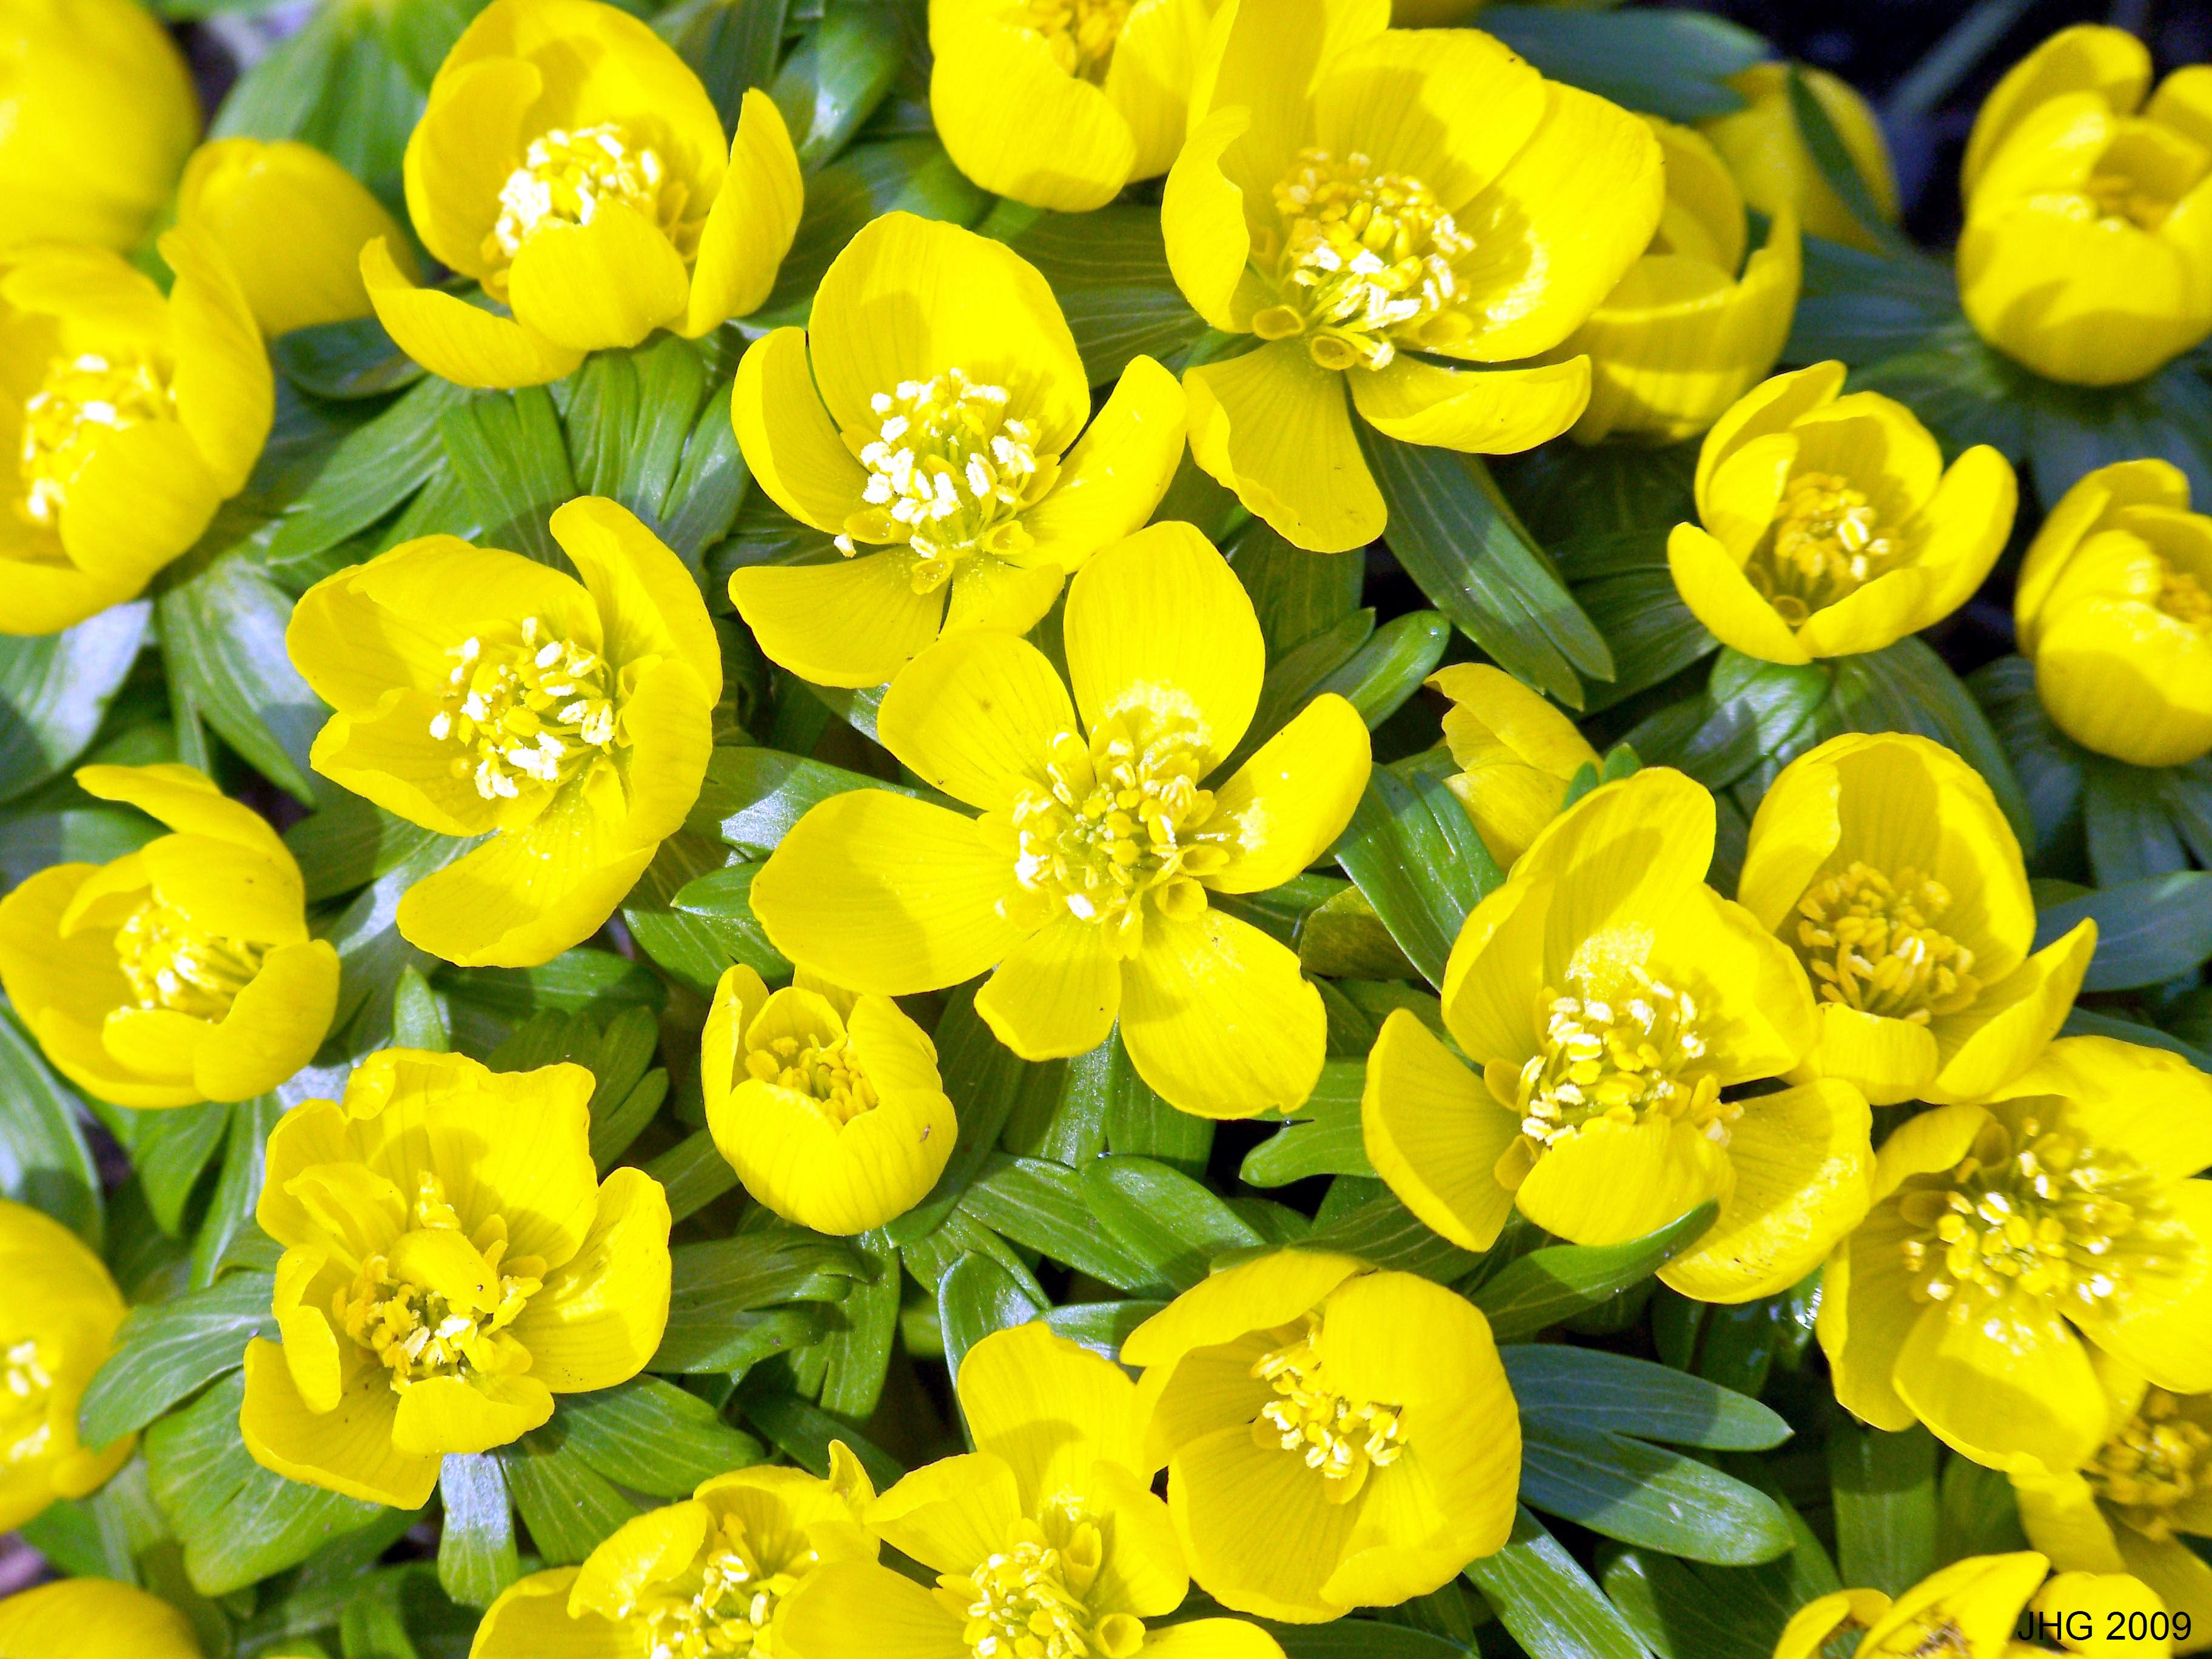 Winter Aconite blossoms in detail.